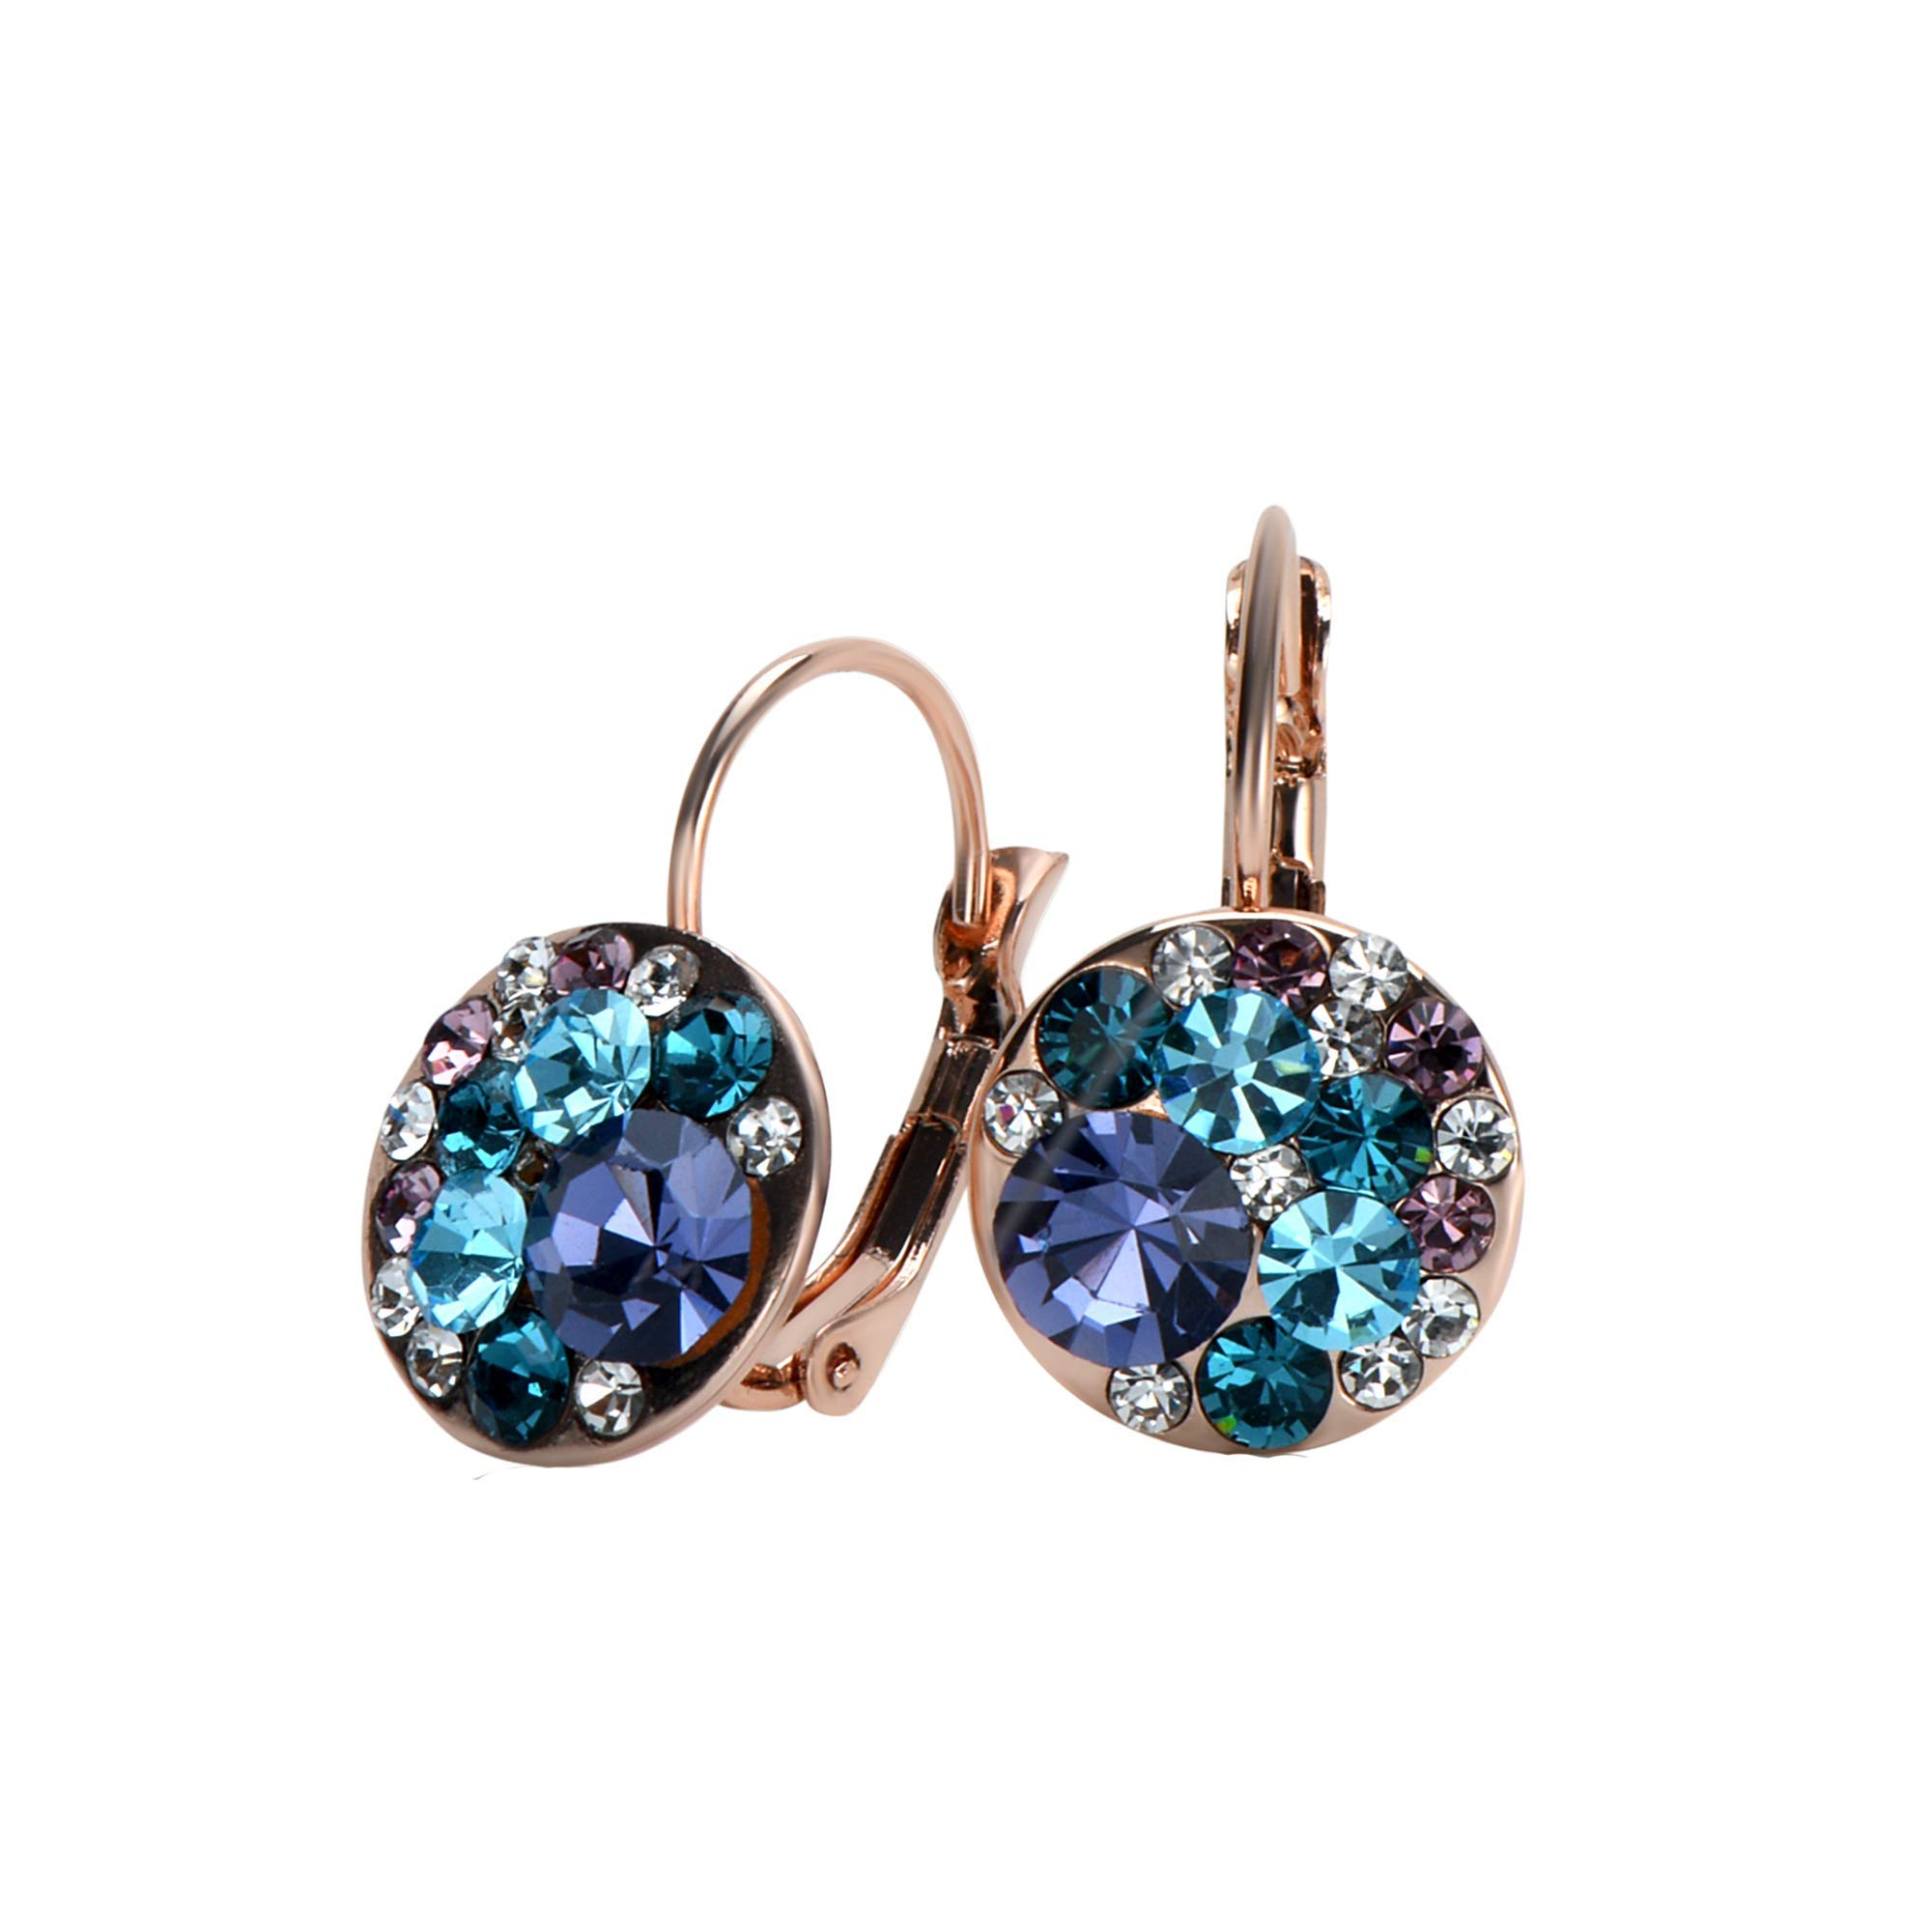 UPSERA Colorful Dangle Leverback Earrings for Women Made with Swarovski Crystals 18k Rose Gold or Silver Tone Plated Fashion Drop Jewelry Gift for Her - Blue Tanzanite